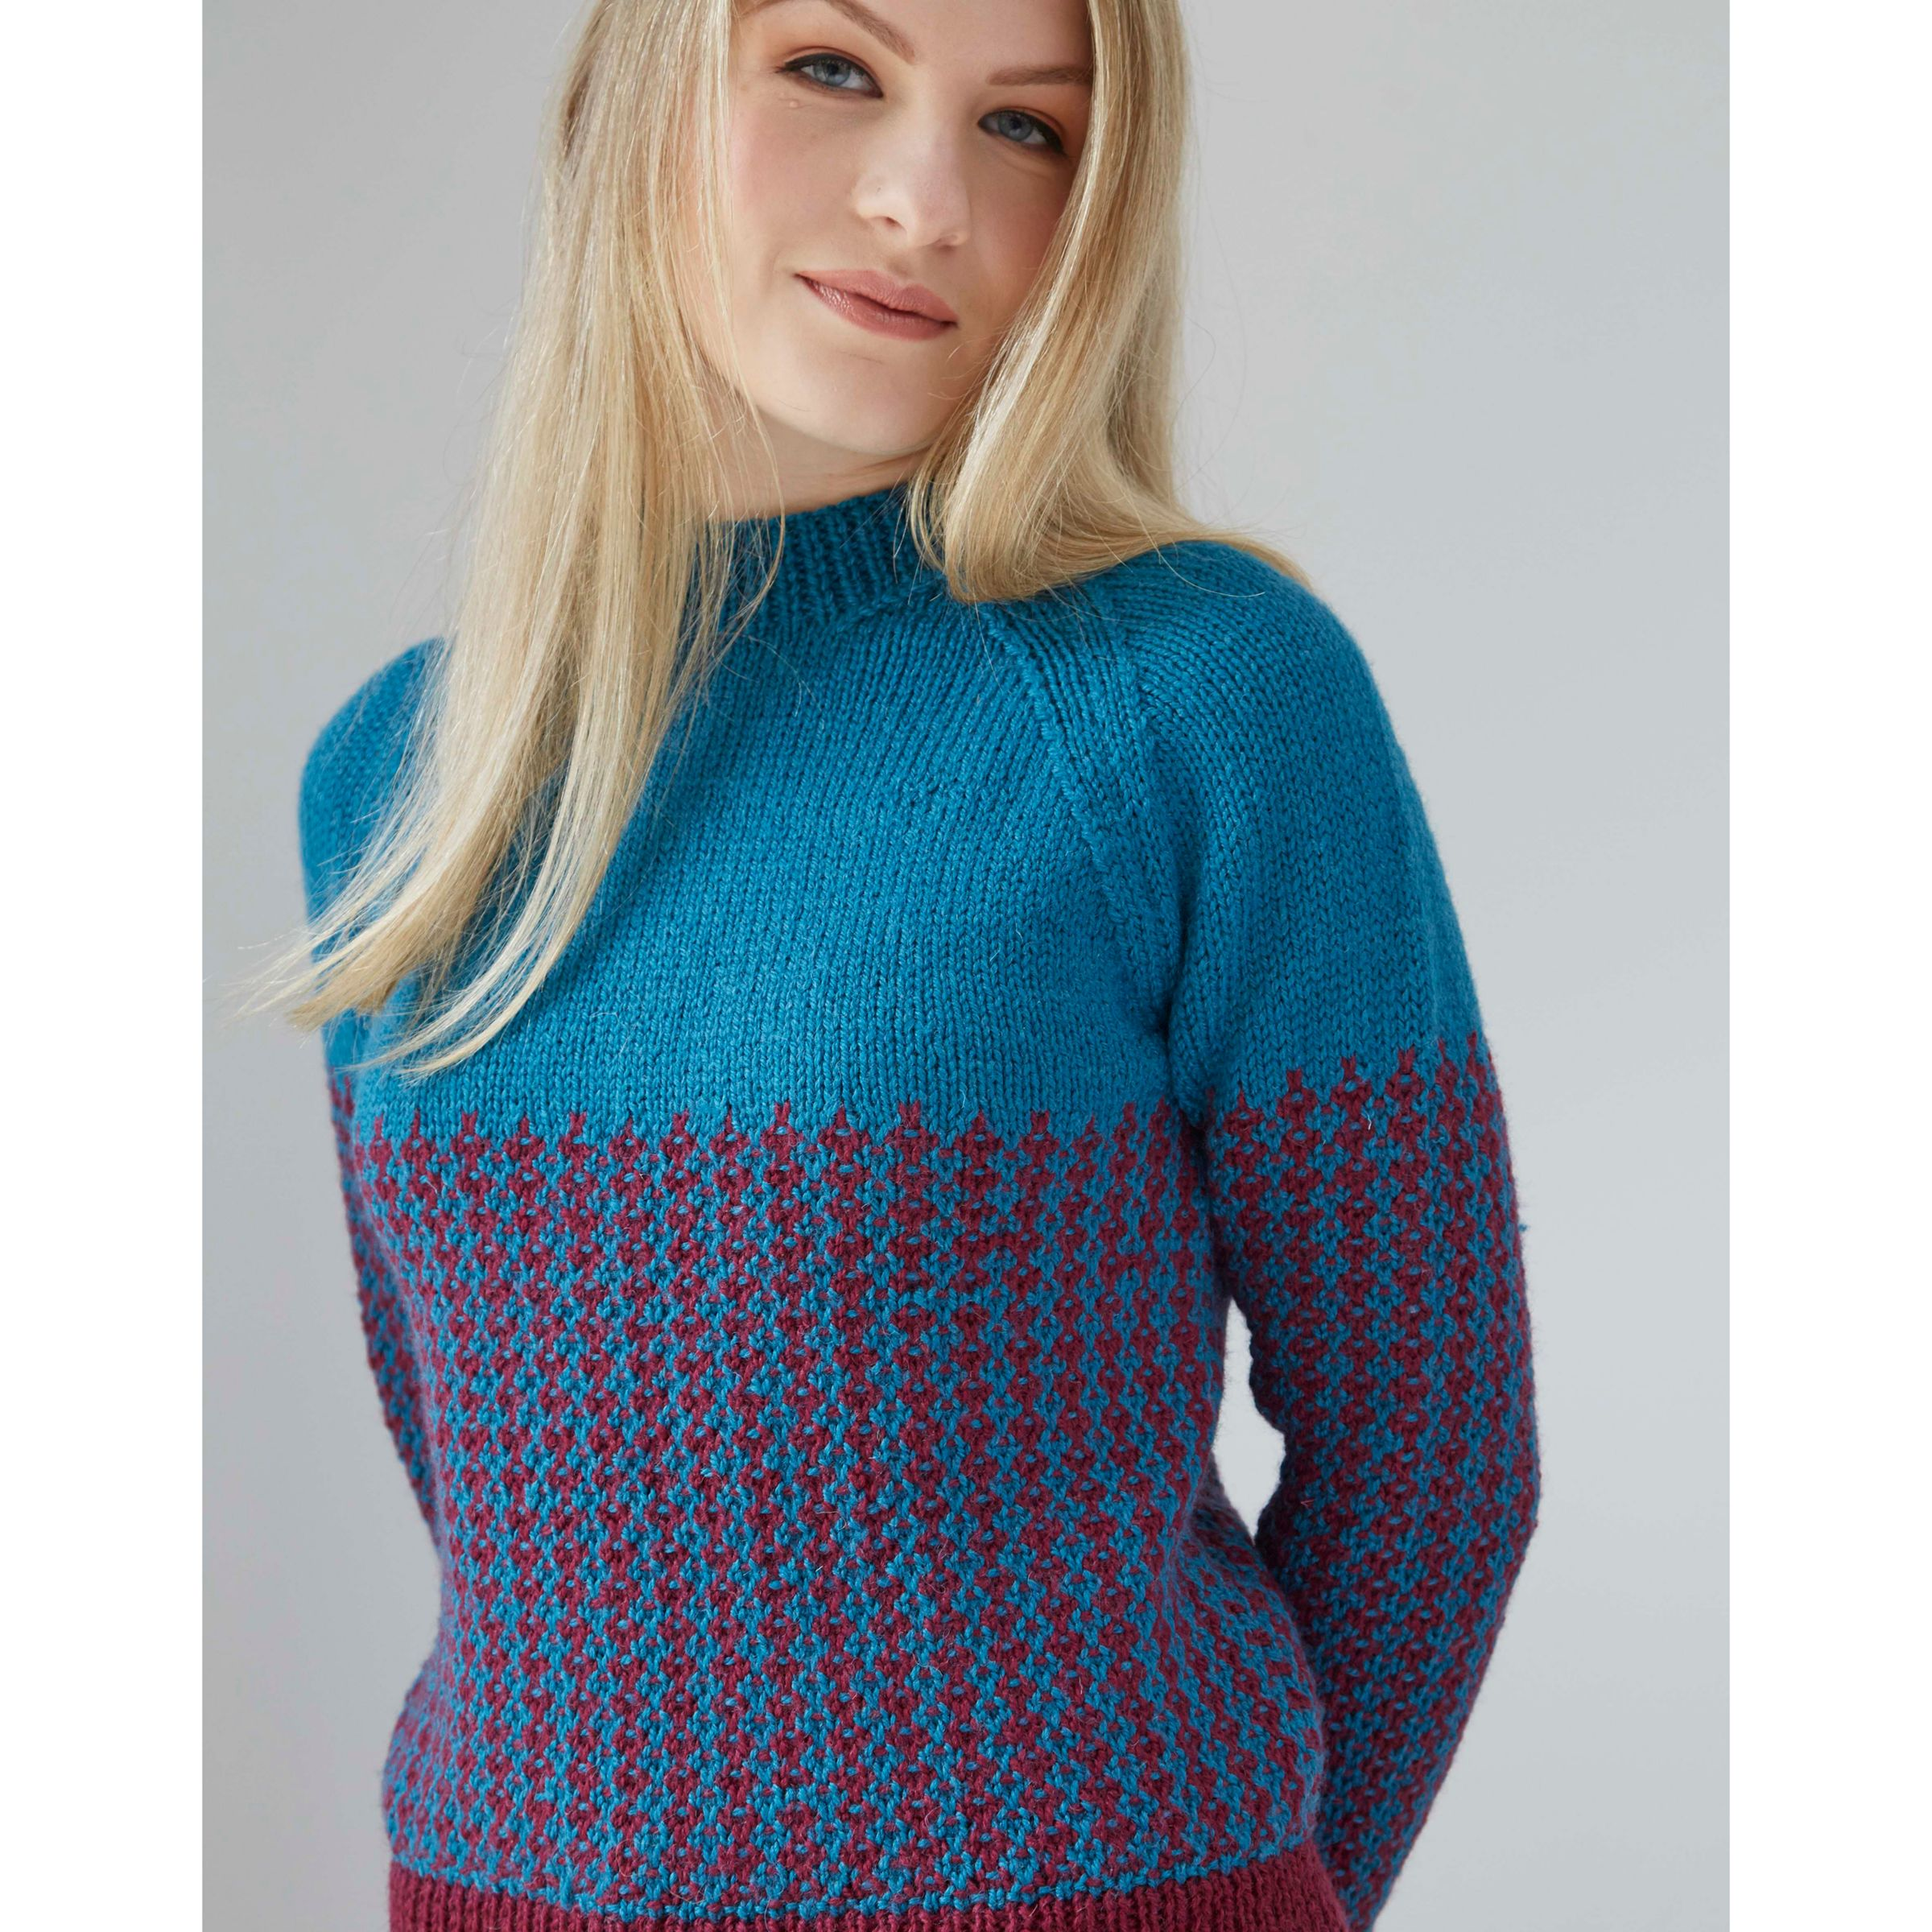 Knitting Pattern John Lewis : Buy Debblie Bliss Simply Knits Knitting Pattern John Lewis